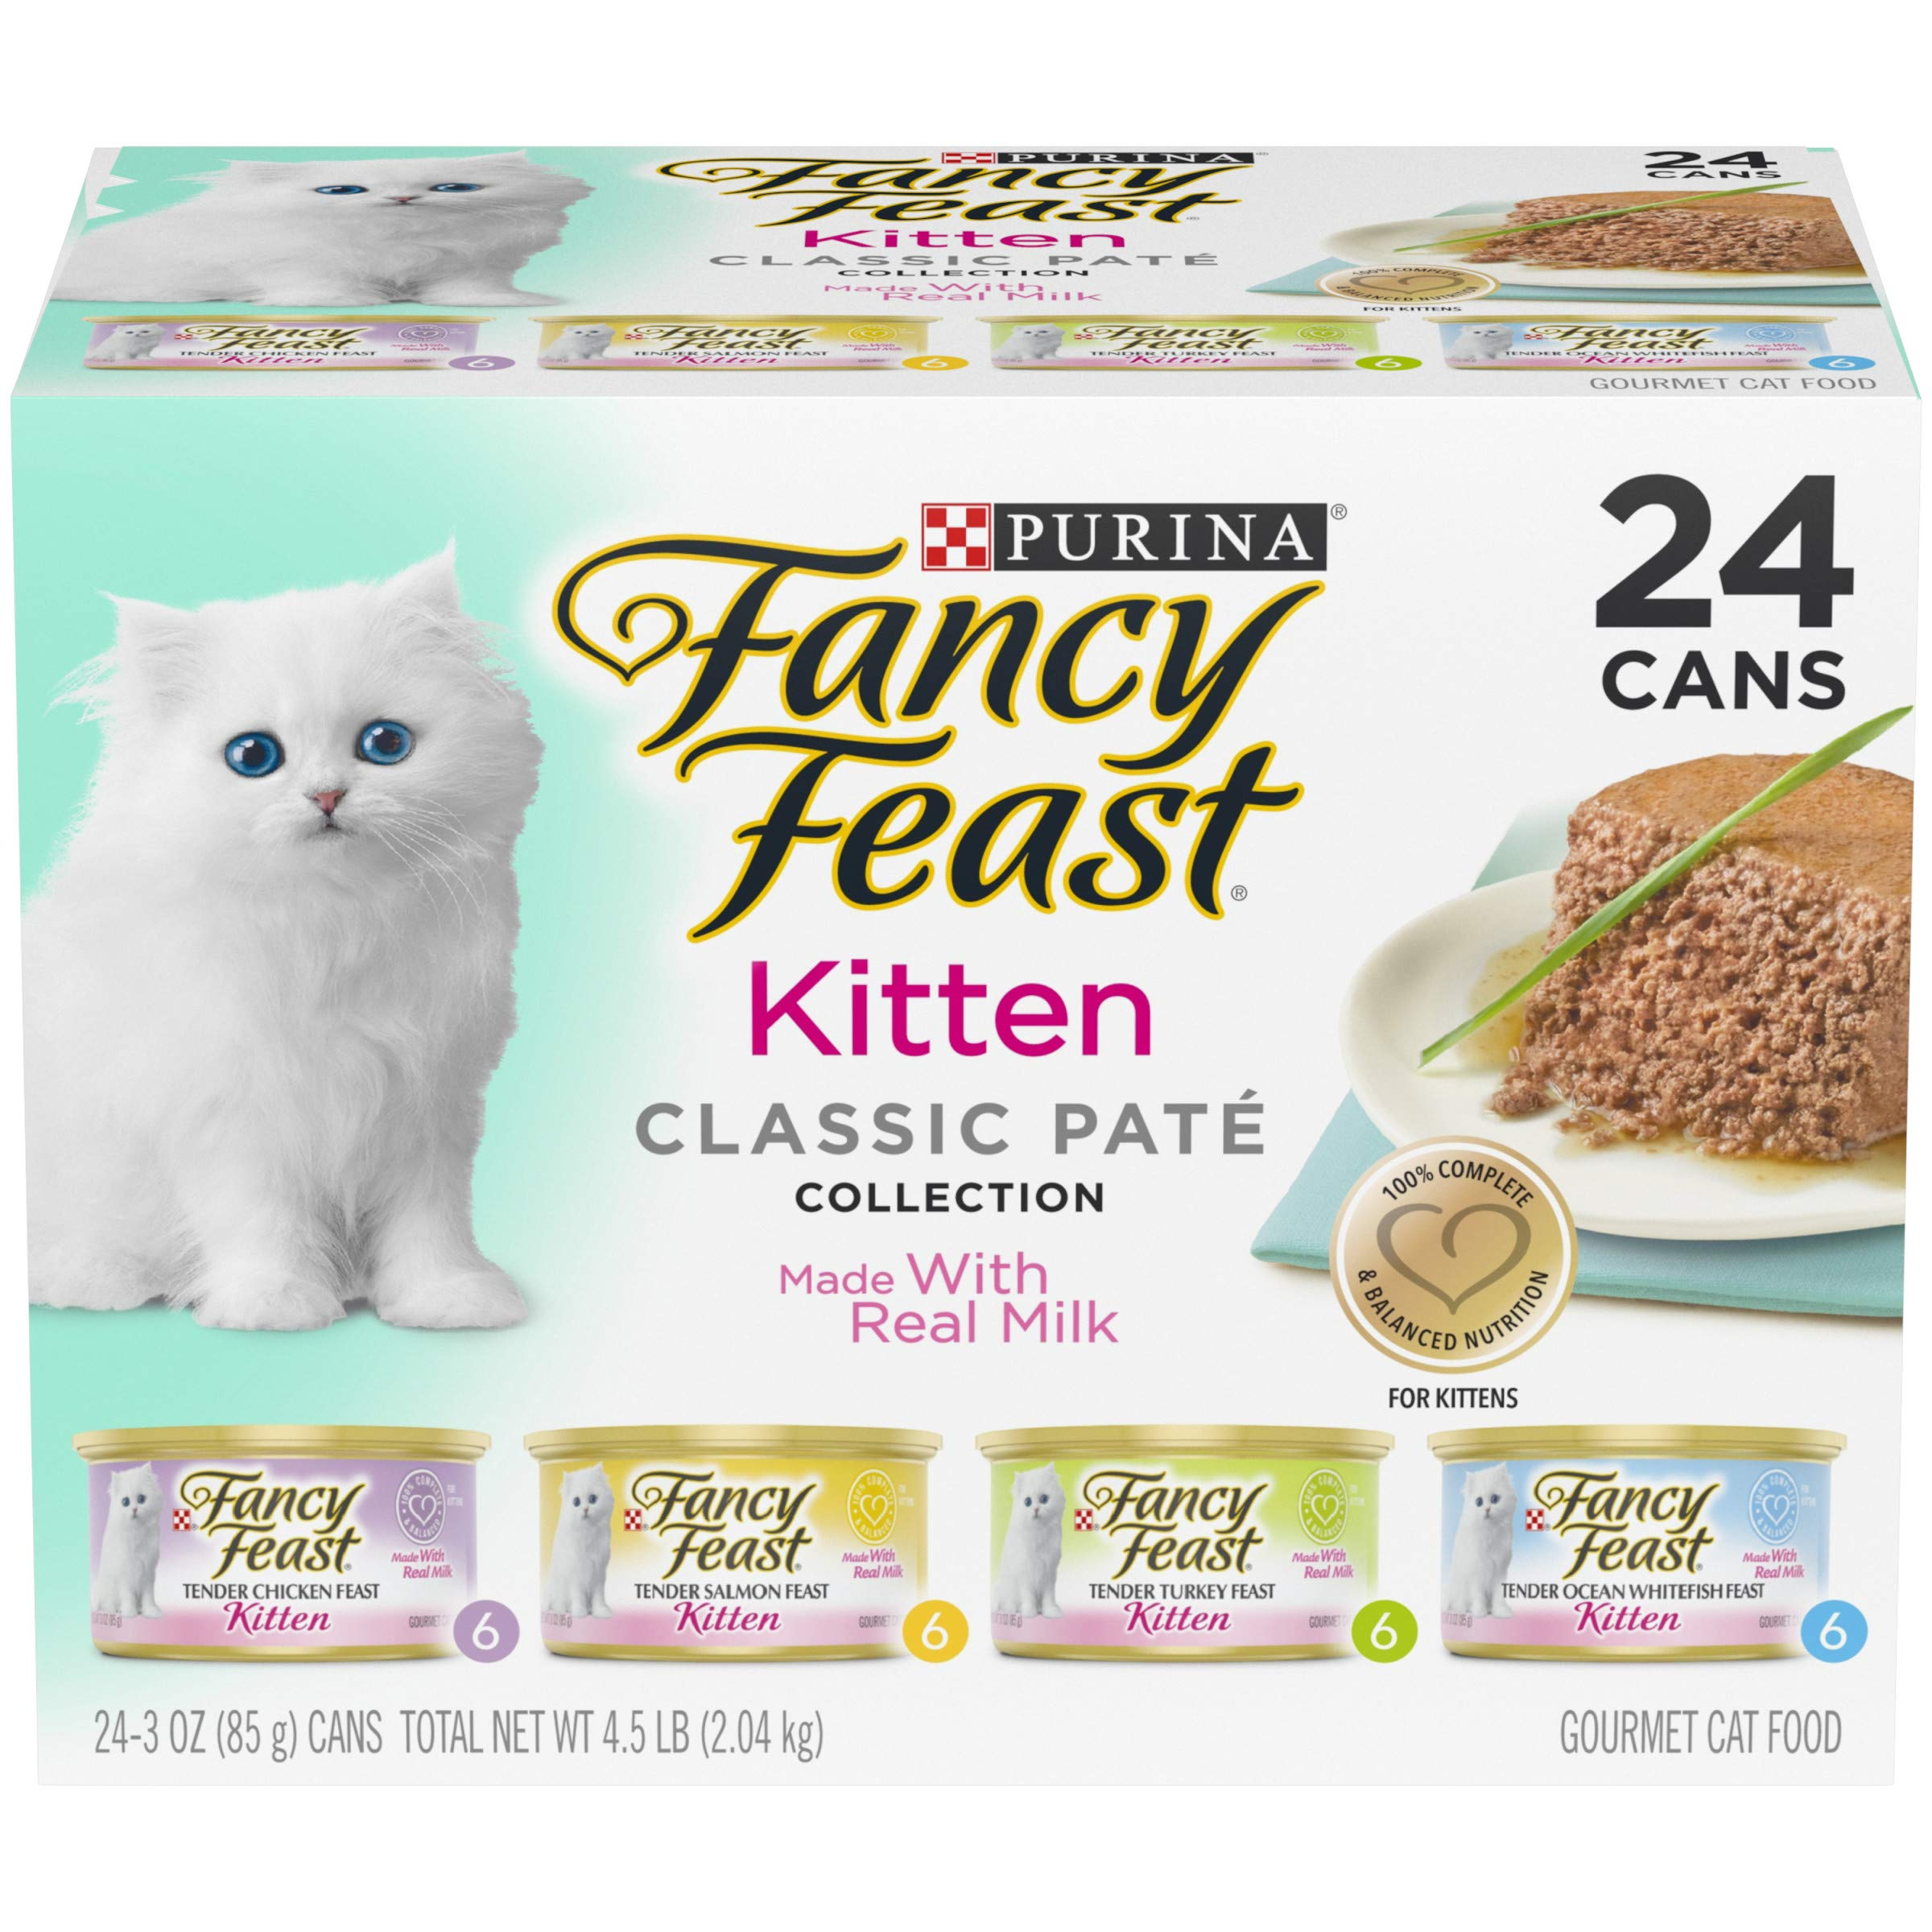 Purina Fancy Feast Grain Free Pate Wet Kitten Food Variety Pack, Kitten Classic Pate Collection, 4 flavors – (24) 3 oz. Boxes